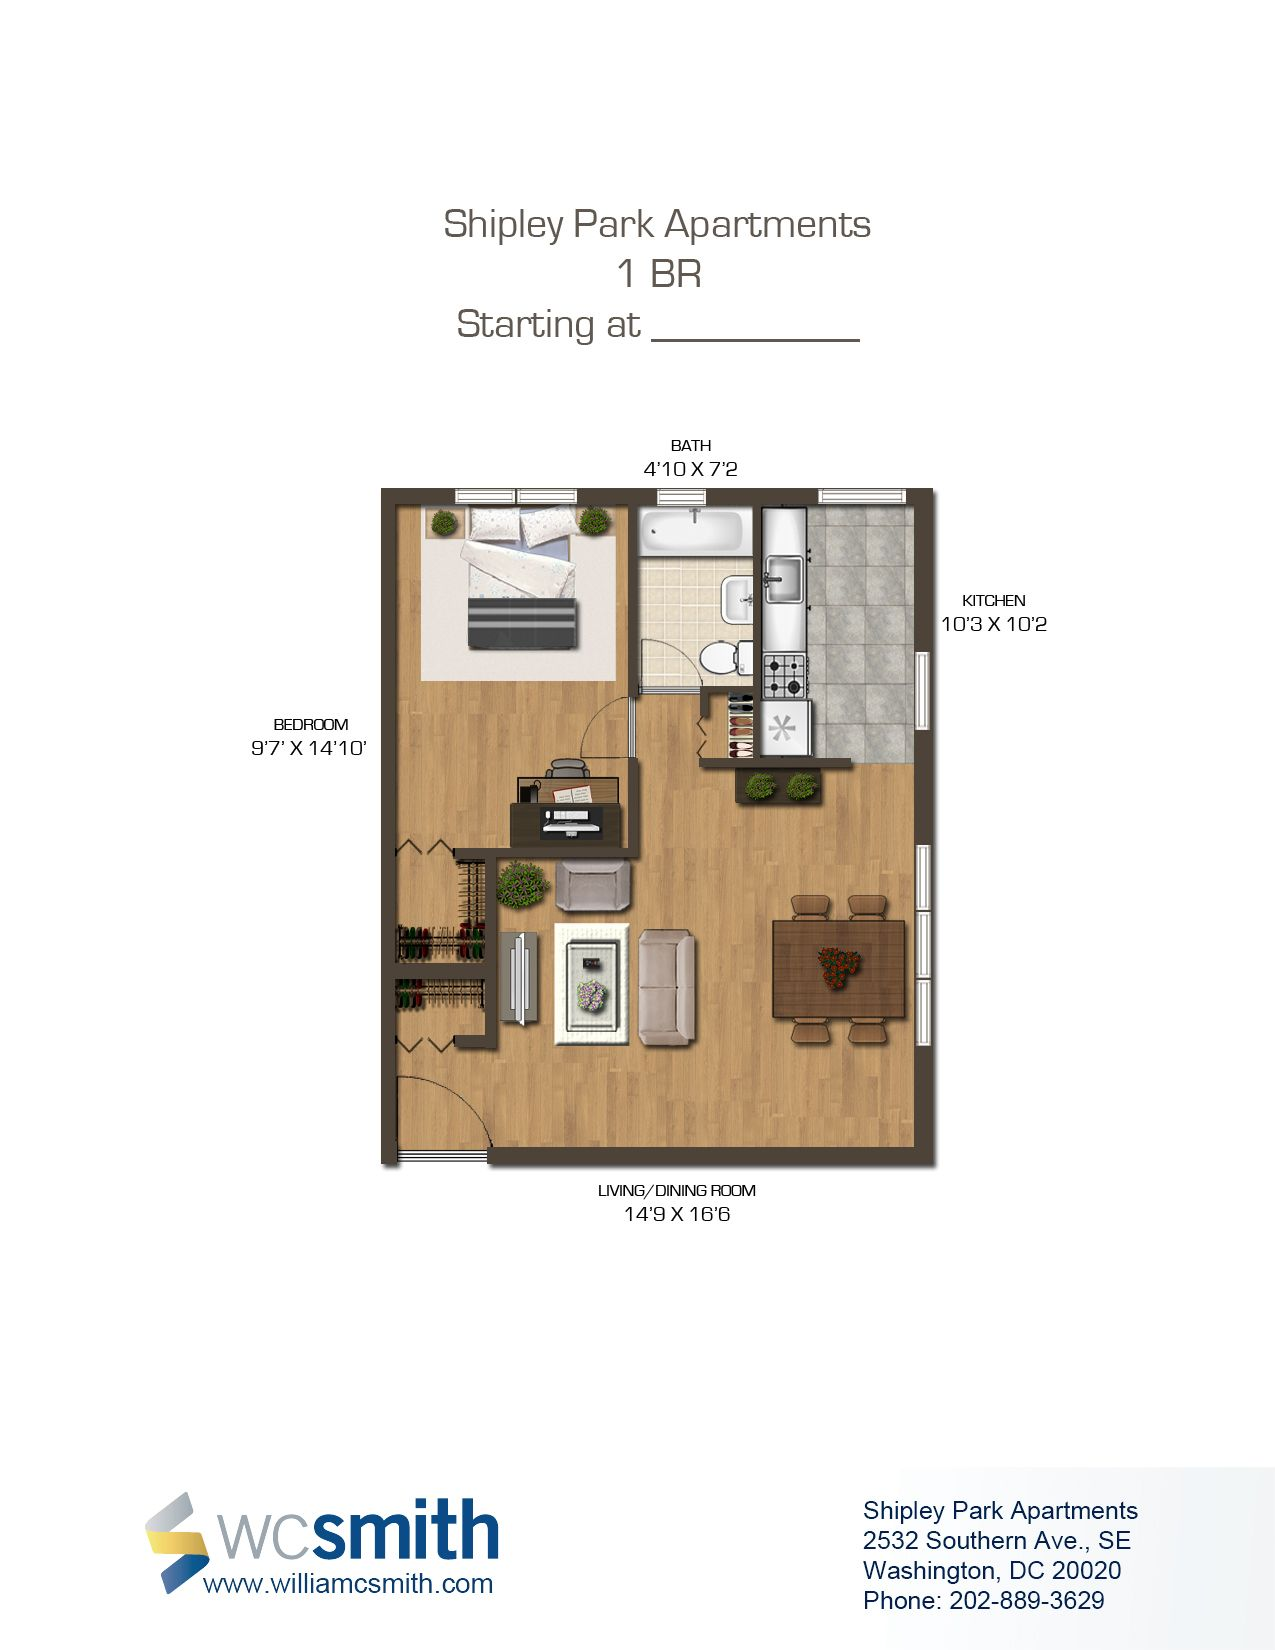 2 Bedroom Apartments For Rent In Dc Alluring Shipley Park  Washington Dc Apartments And Park 2018